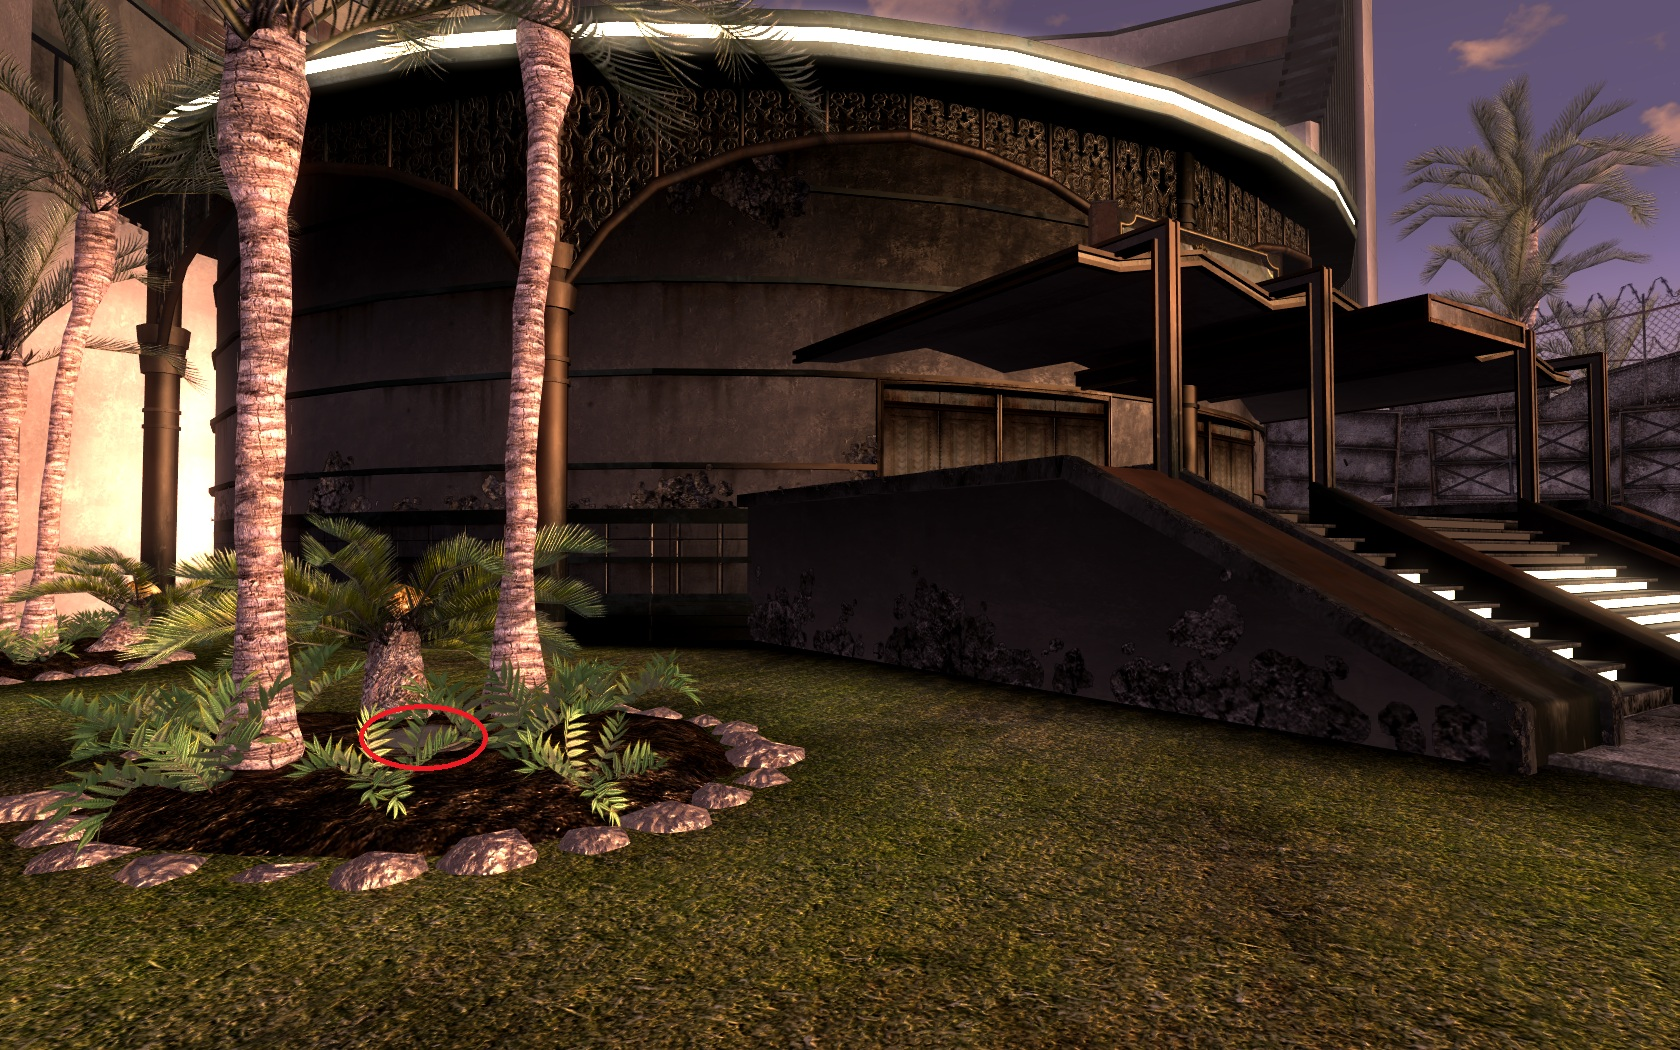 Ultra luxe penthouse player home at fallout new vegas mods and community - Penthouse luxe missoni home ...